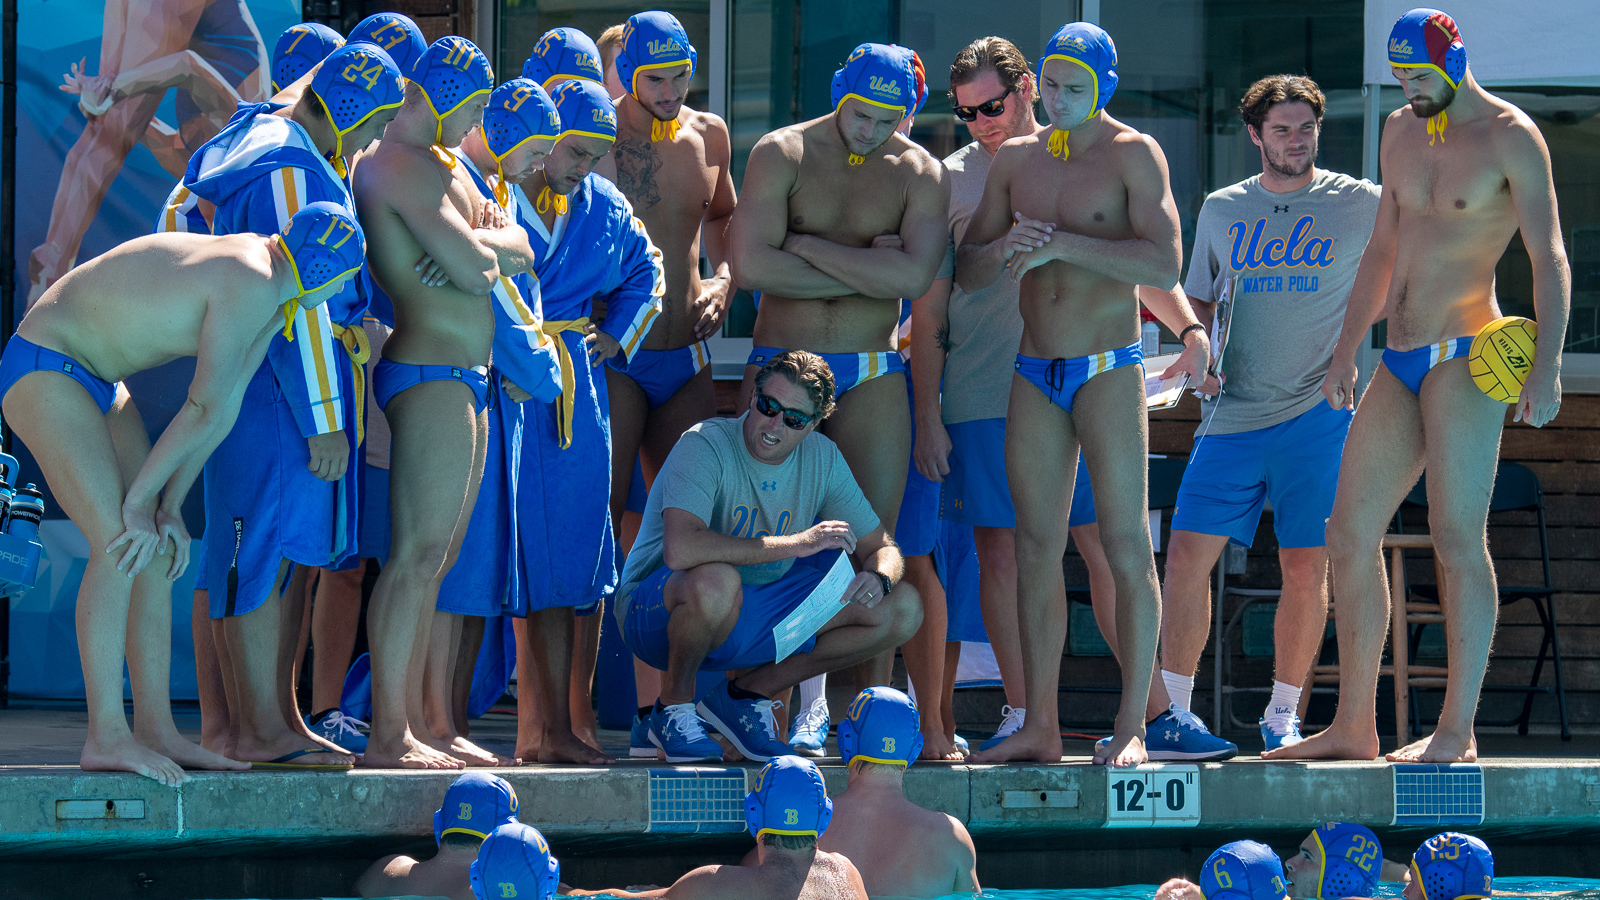 41f8a09b1fc UCLA Selected as No. 3 Seed for NCAA Championship - UCLA